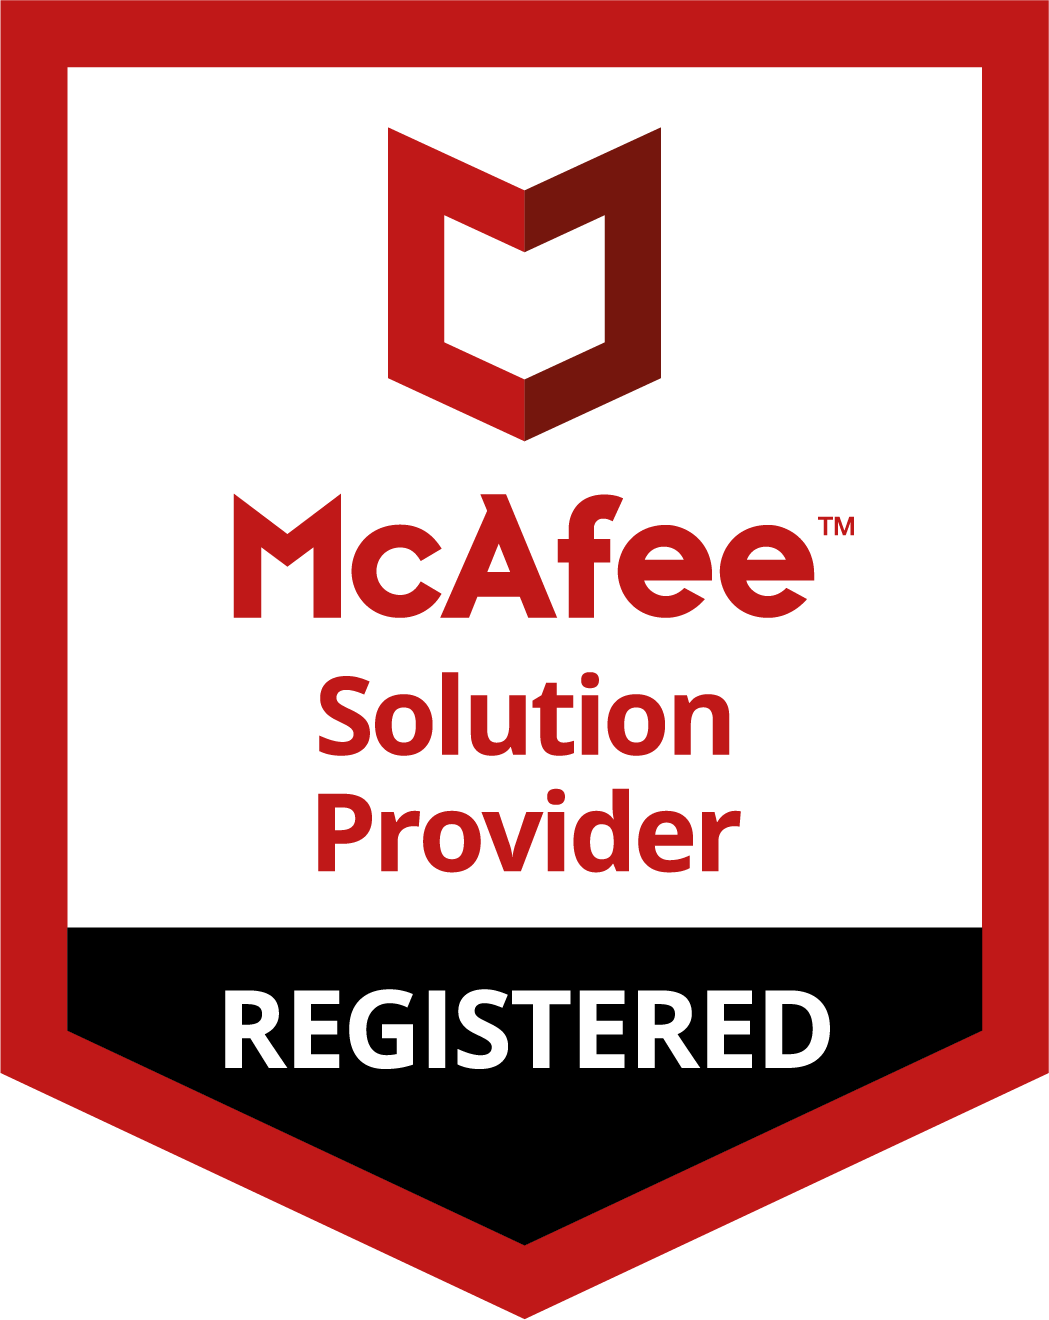 how to delete mcafee from my computer